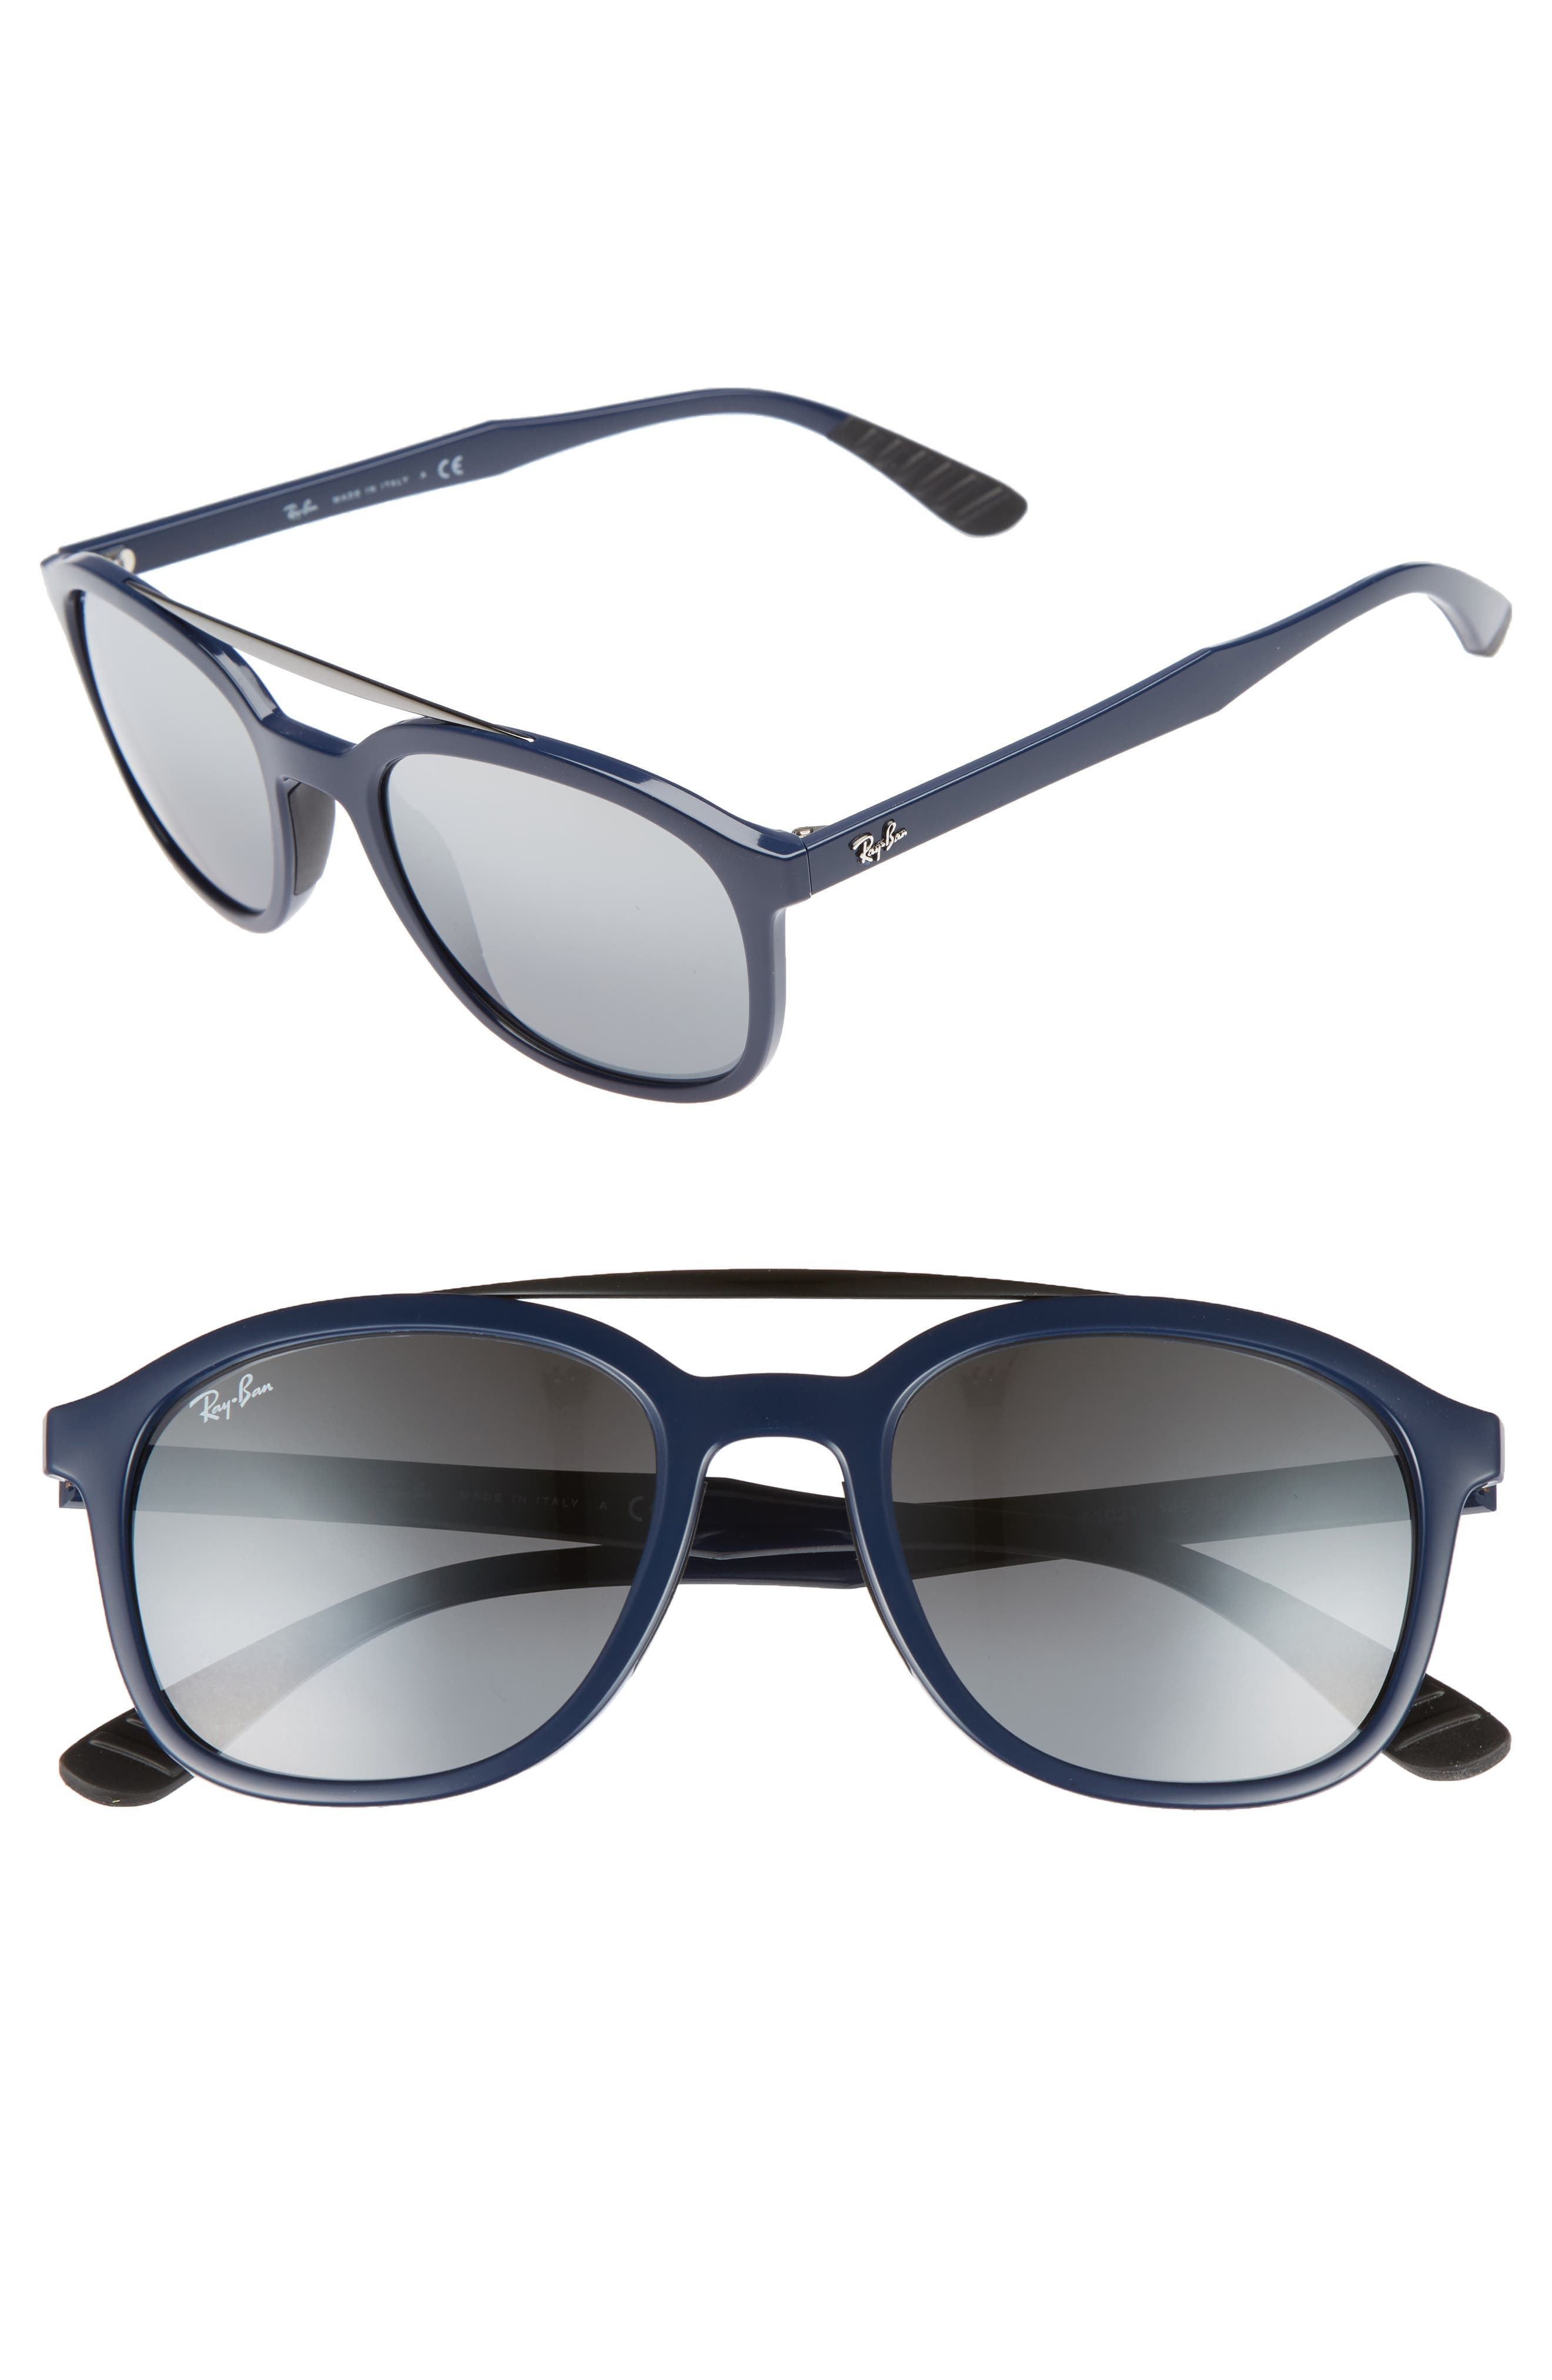 Active Lifestyle 53mm Sunglasses,                             Main thumbnail 1, color,                             BLUE